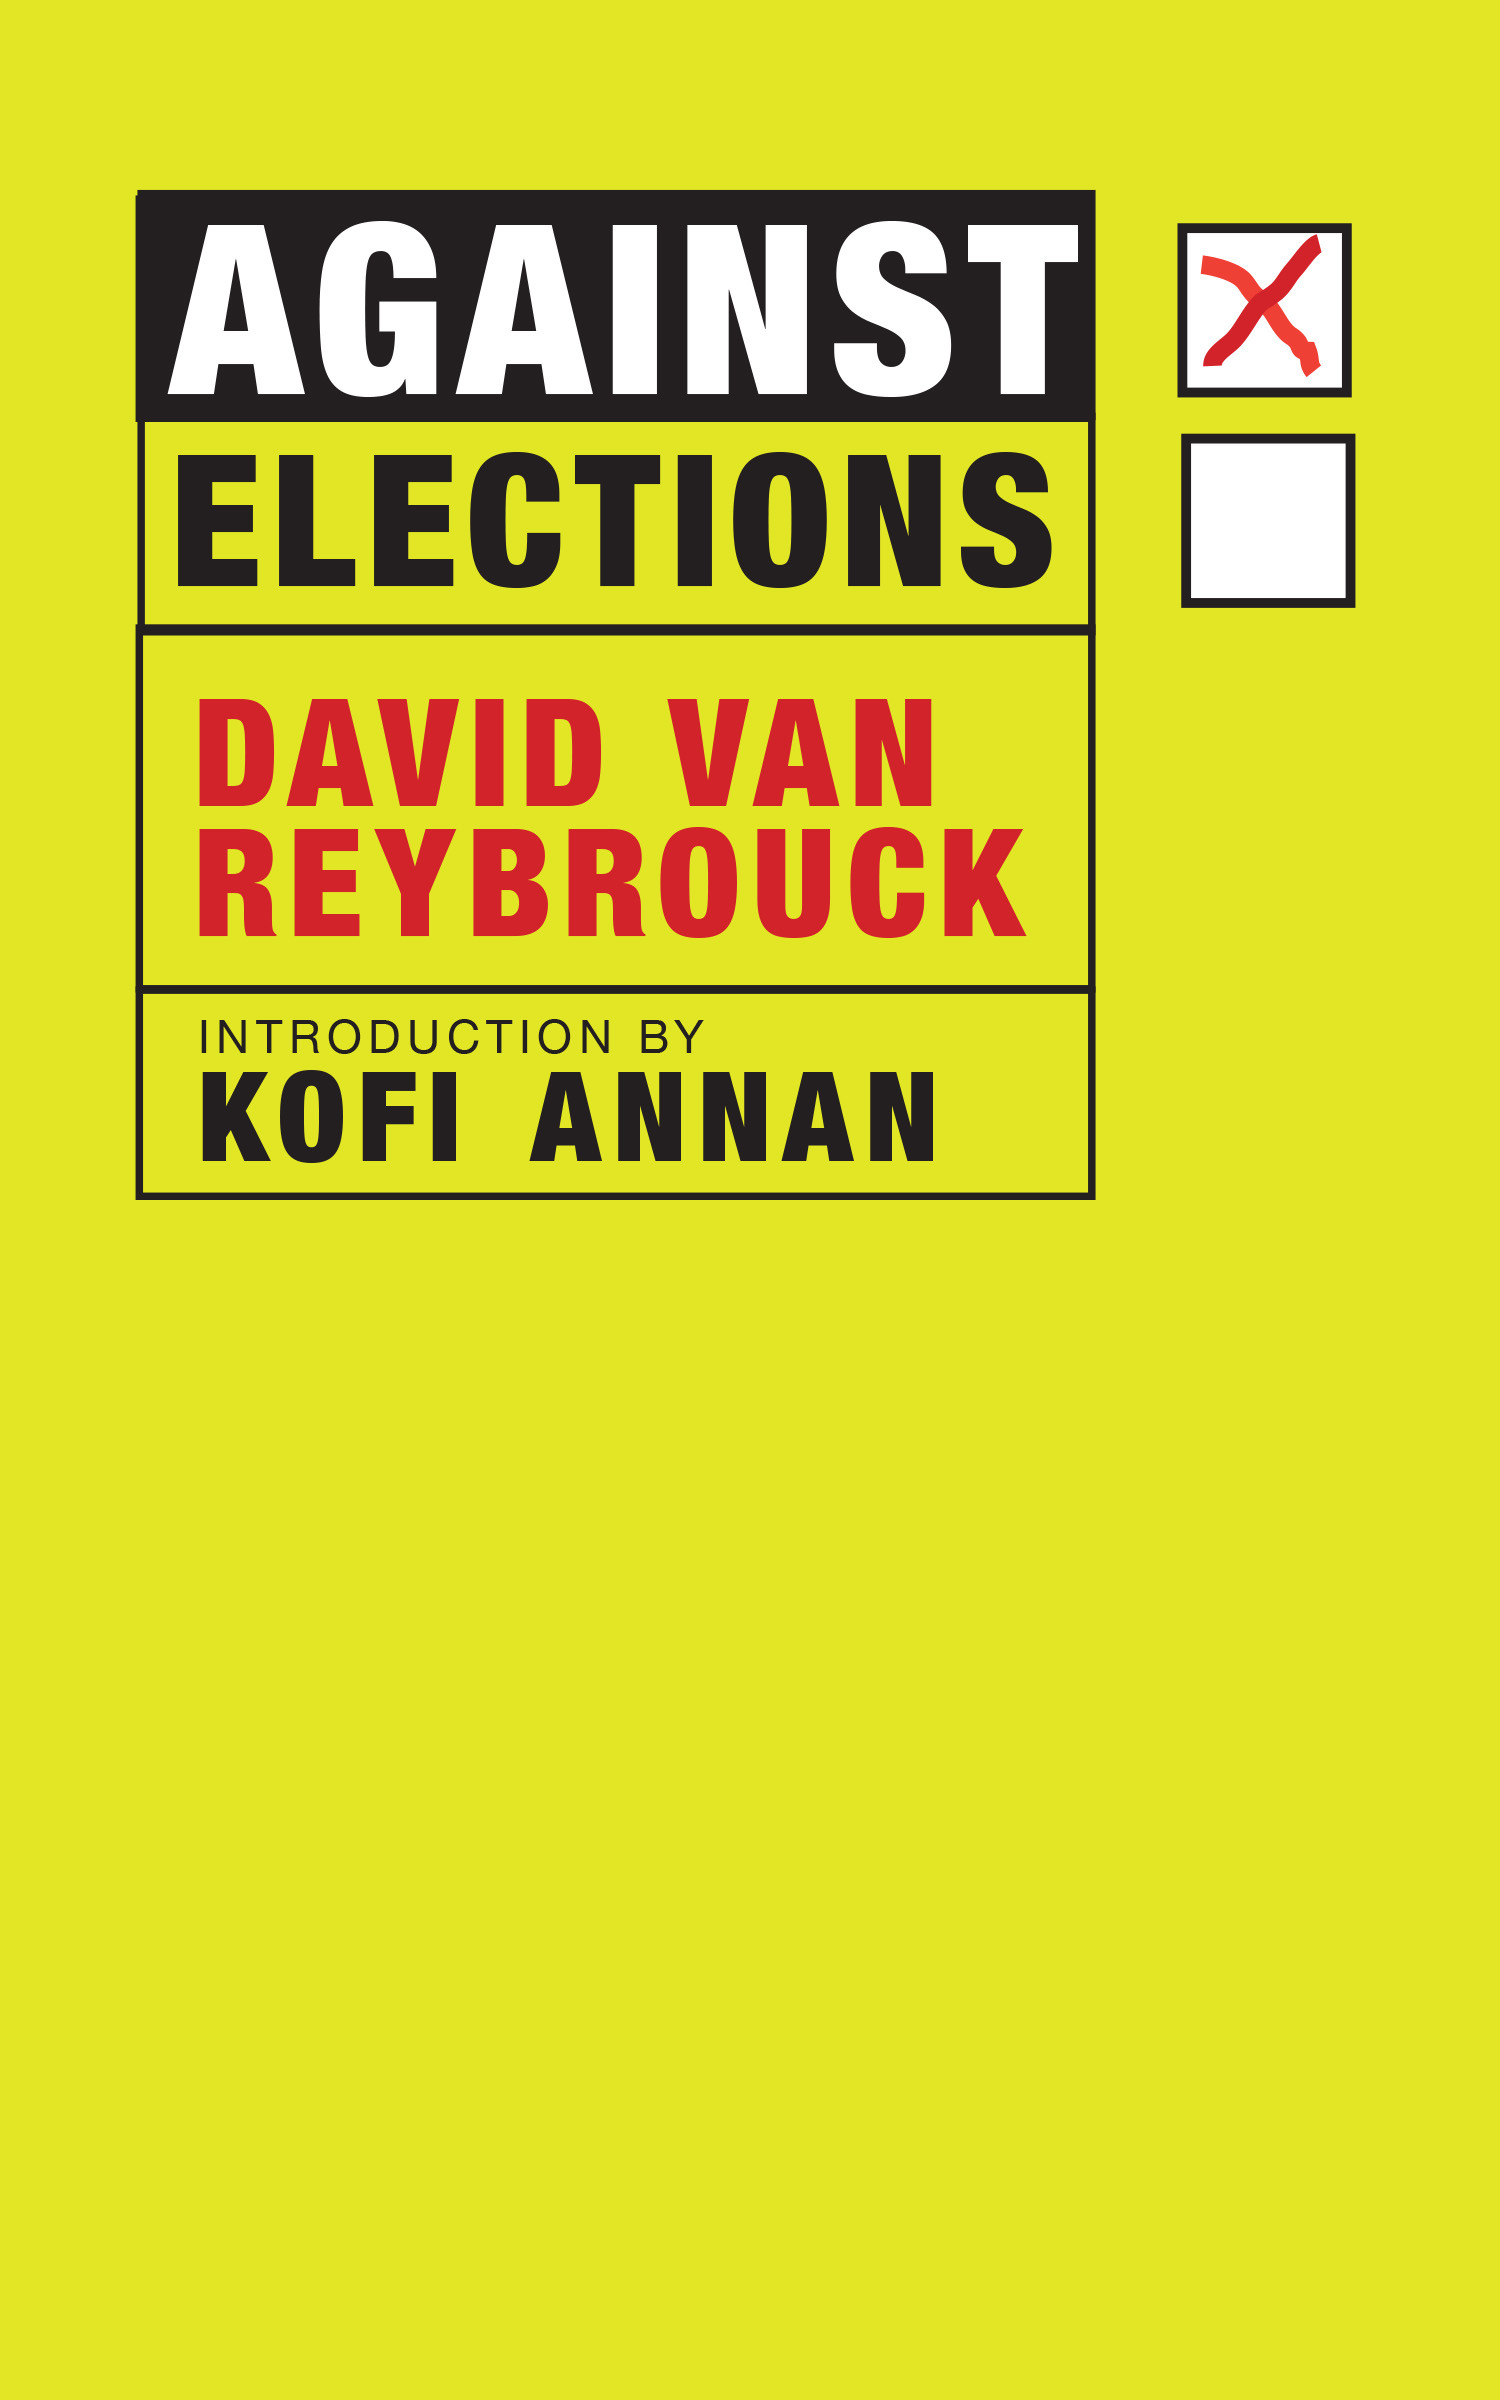 Seven stories press against elections a call for radical democracy fandeluxe Image collections